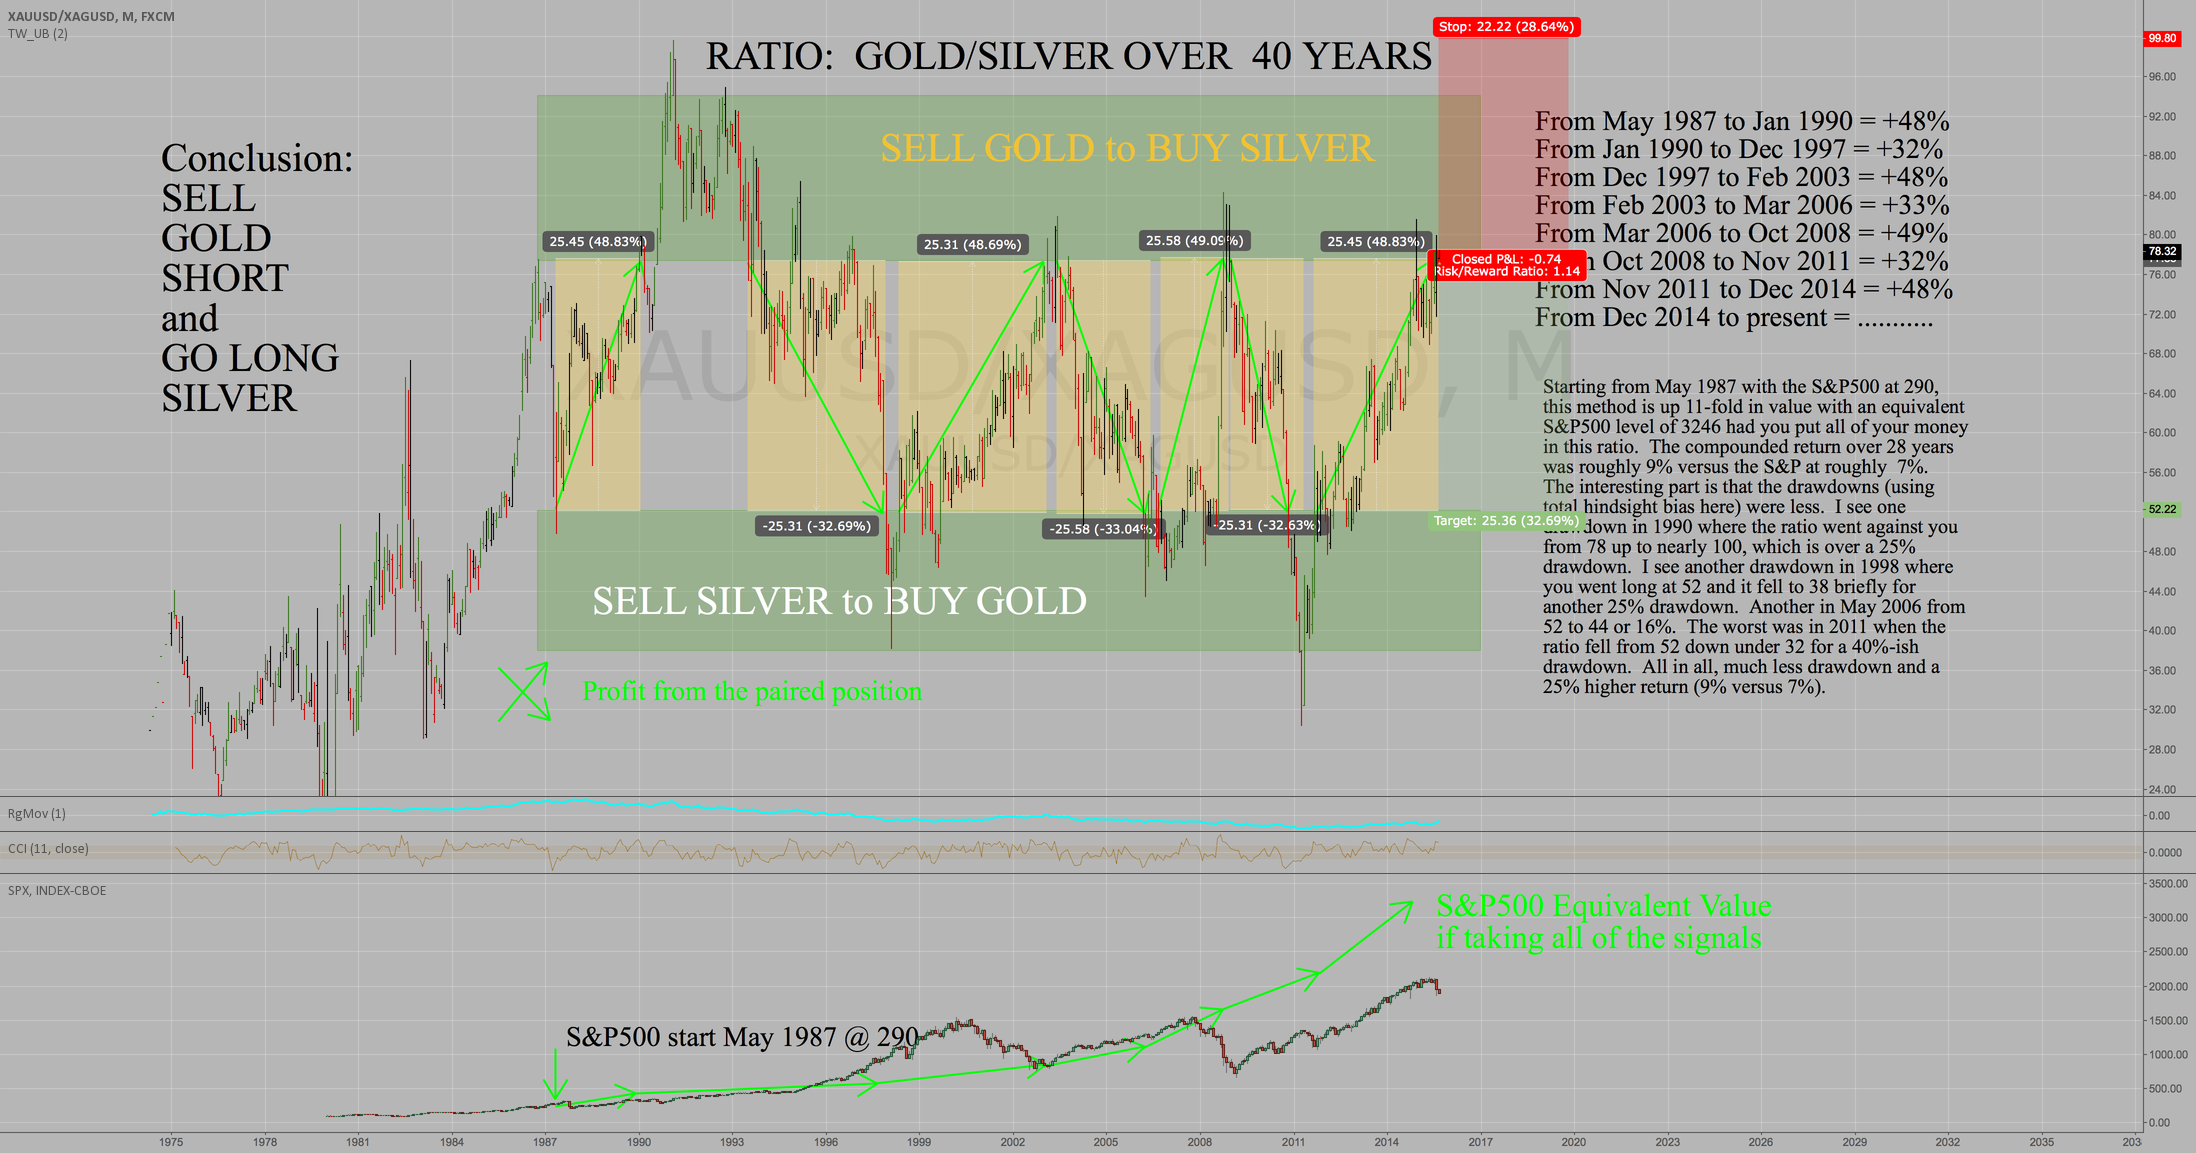 GOLD/SILVER RATIO FLASHING A MAJOR SIGNAL